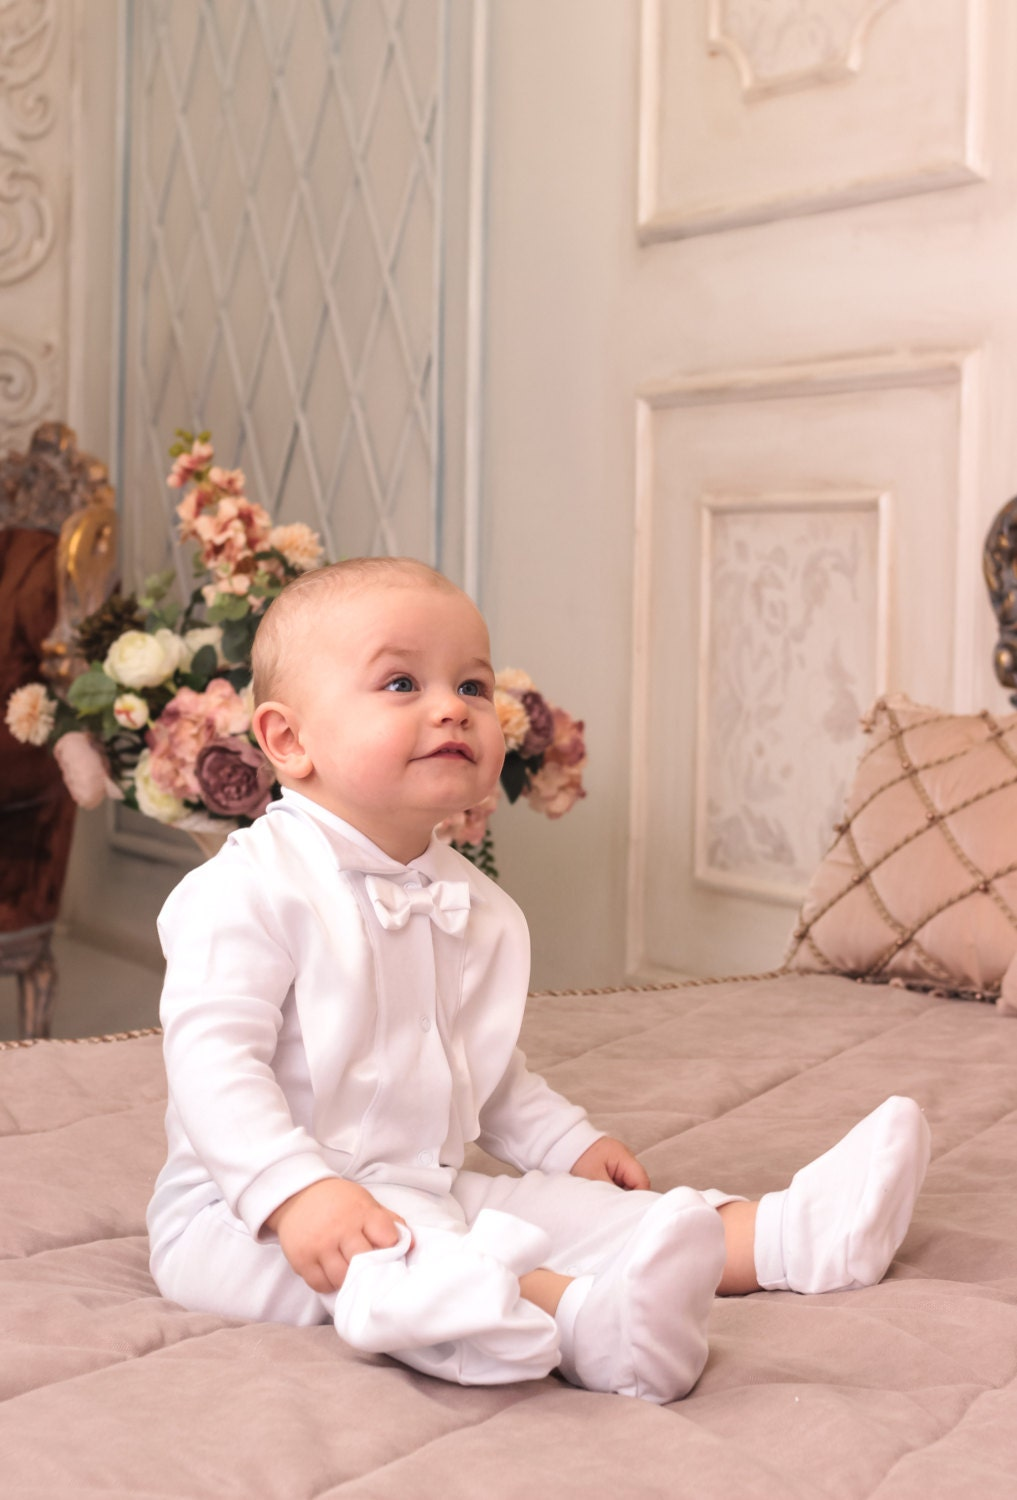 Christening Gowns and Christening Outfits have been our specialty for over 30 years and we take pride in producing the highest quality garment possible. We offer many styles and full .